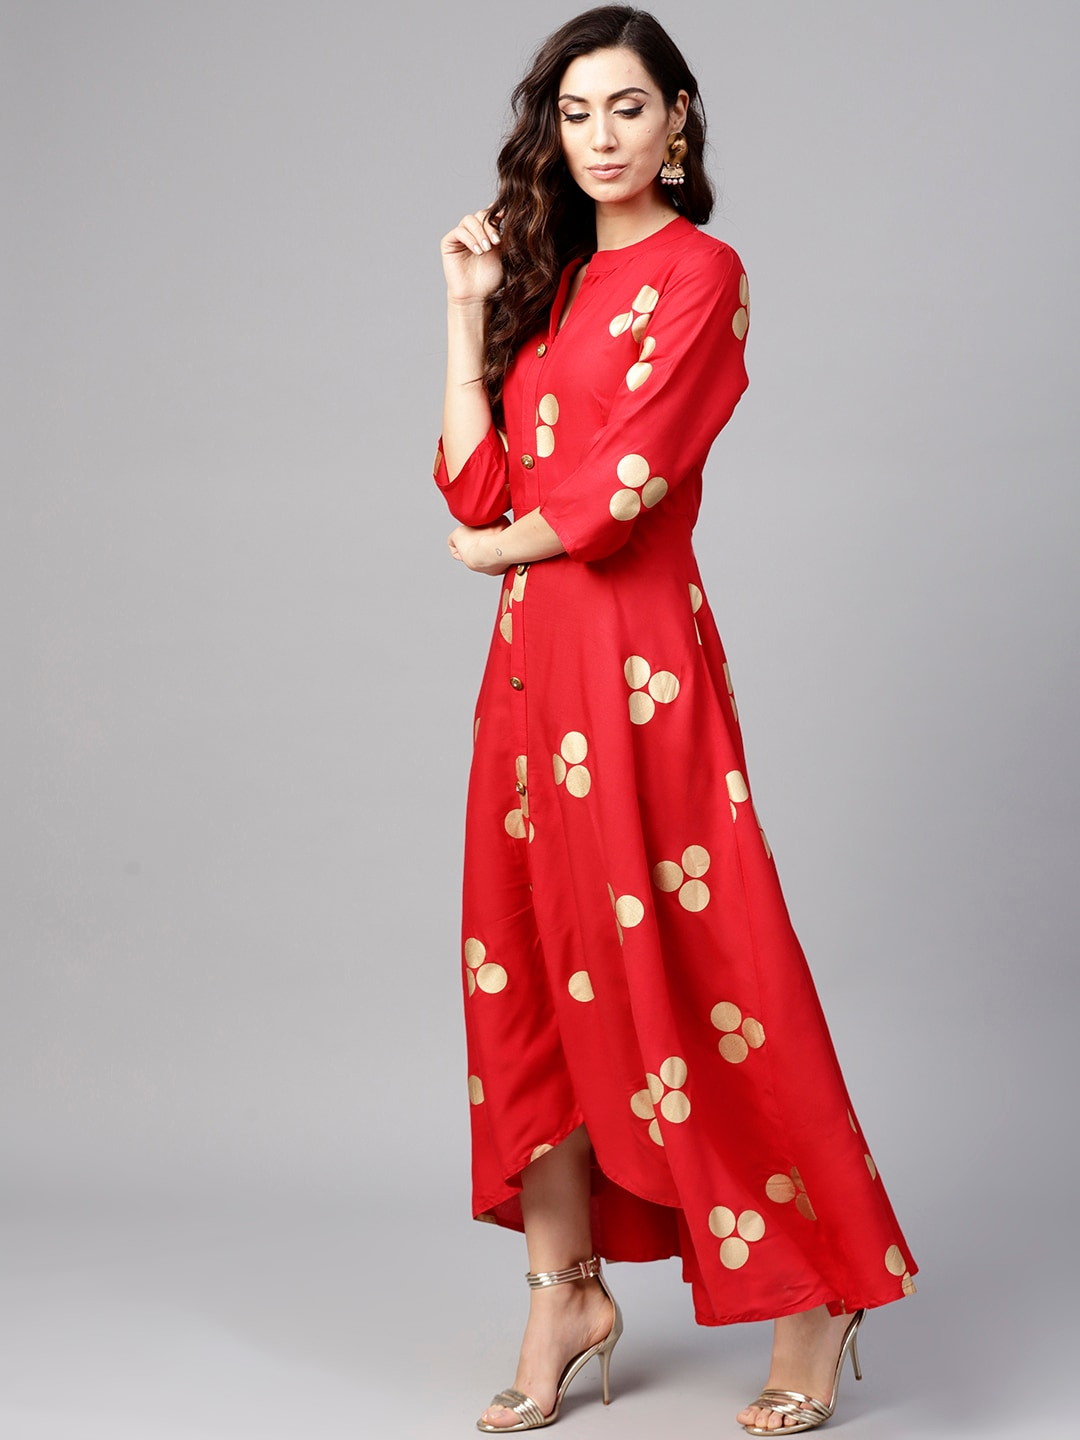 ca8d838800a4bf Red Dress - Buy Trendy Red Colour Dresses Online in India